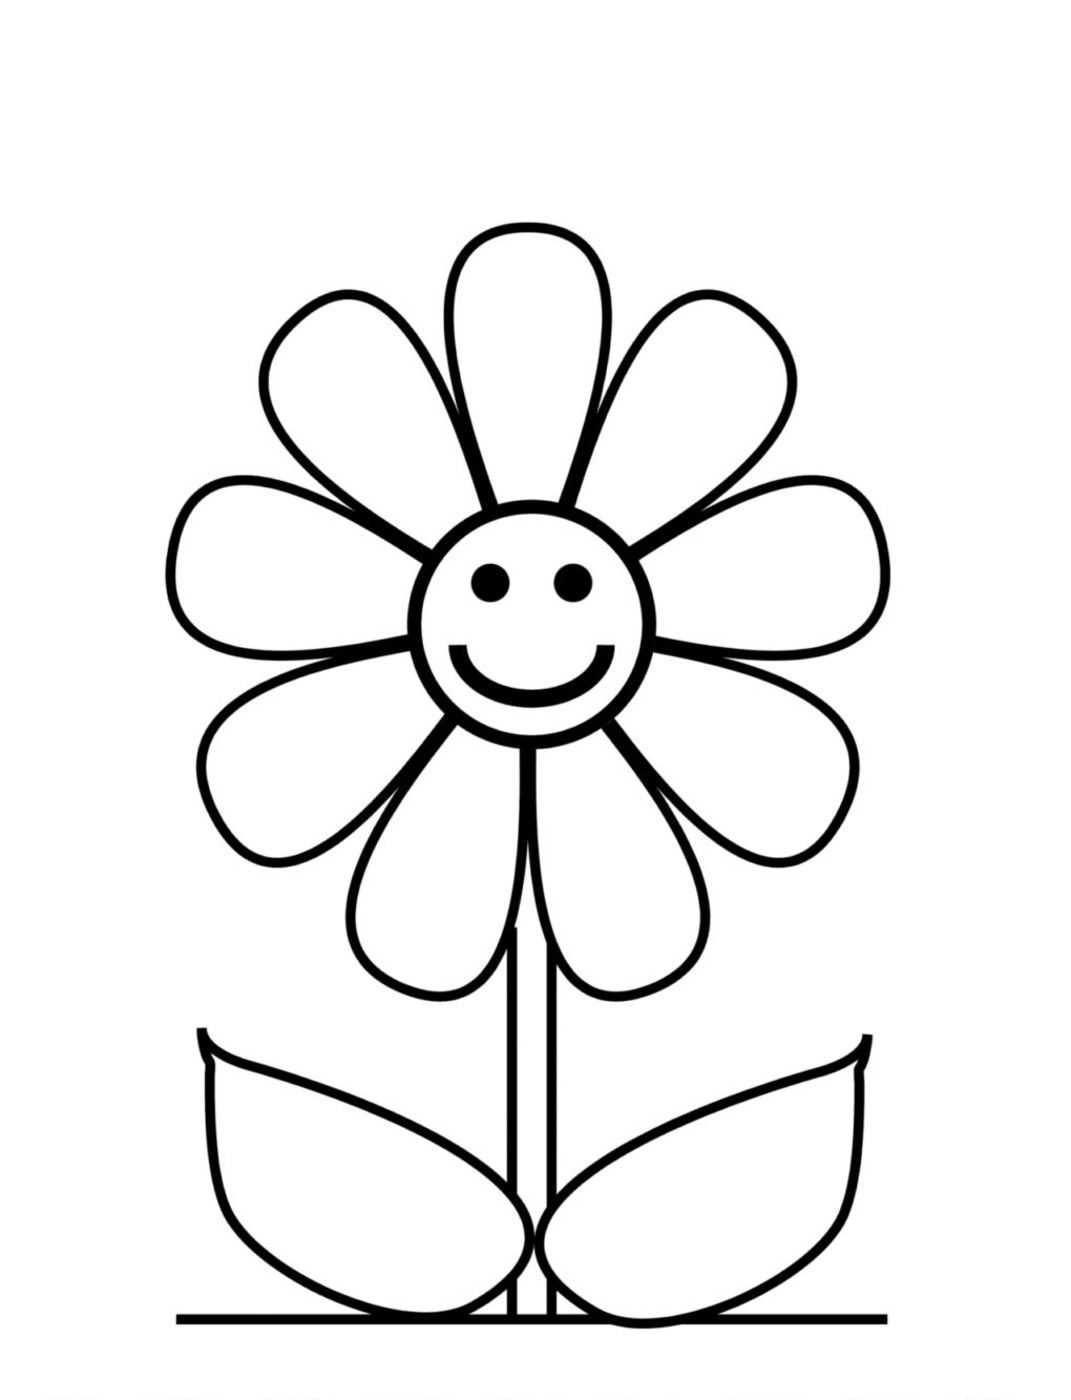 Coloring Pages For Girls | Flower Coloring Pages ... | flower coloring pages preschool